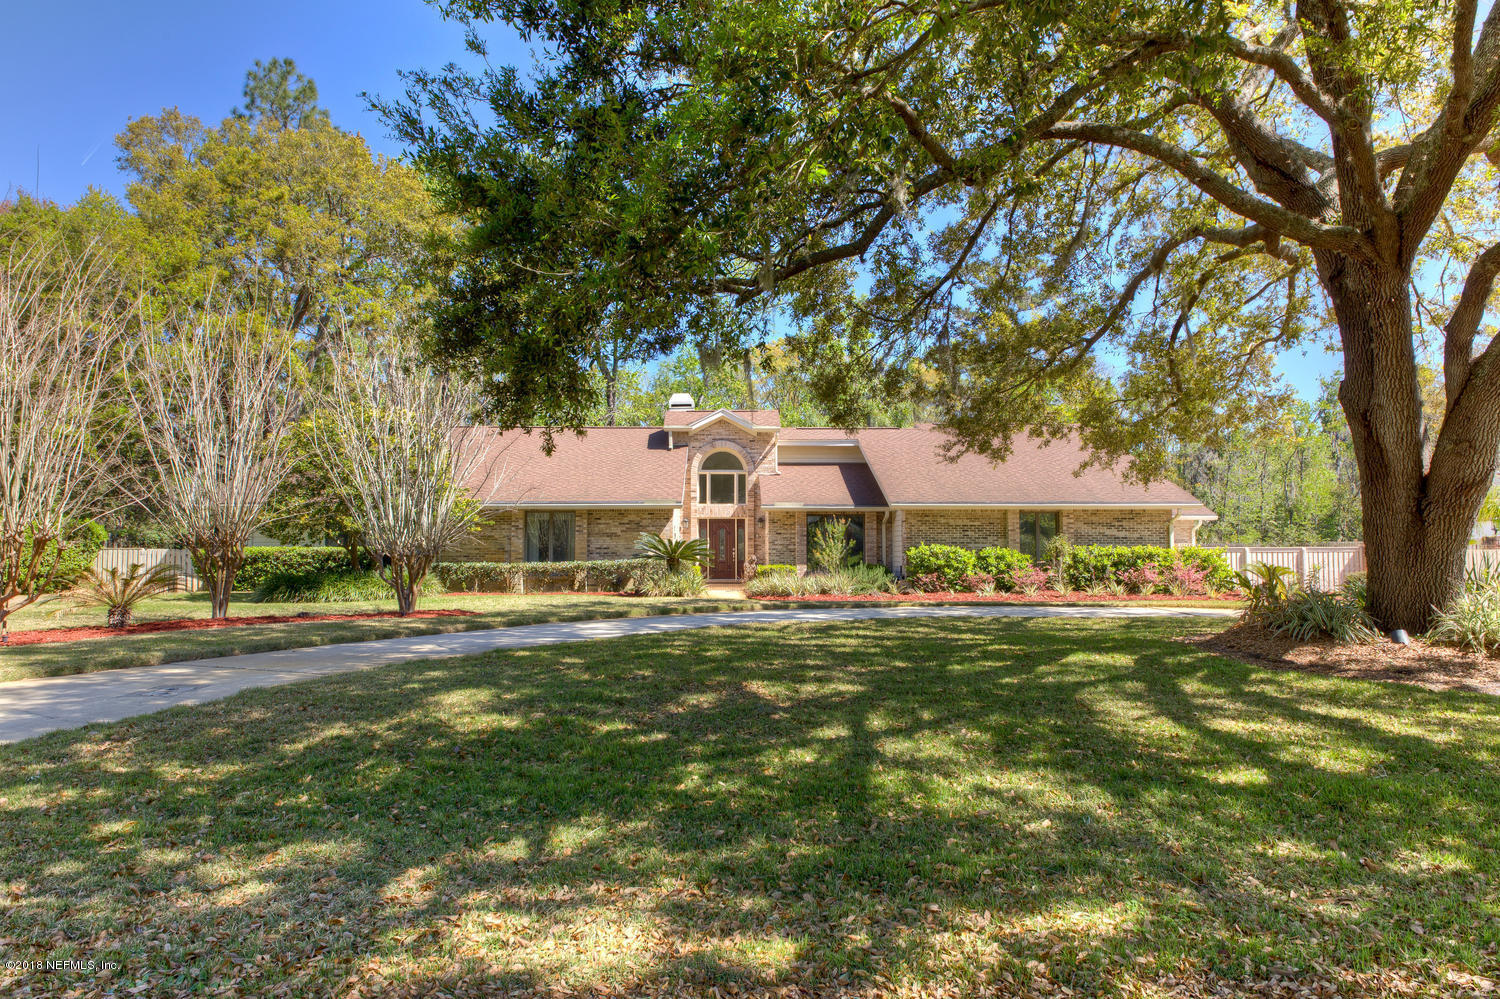 7969 LITTLE FOX, JACKSONVILLE, FLORIDA 32256, 5 Bedrooms Bedrooms, ,4 BathroomsBathrooms,Residential - single family,For sale,LITTLE FOX,957267